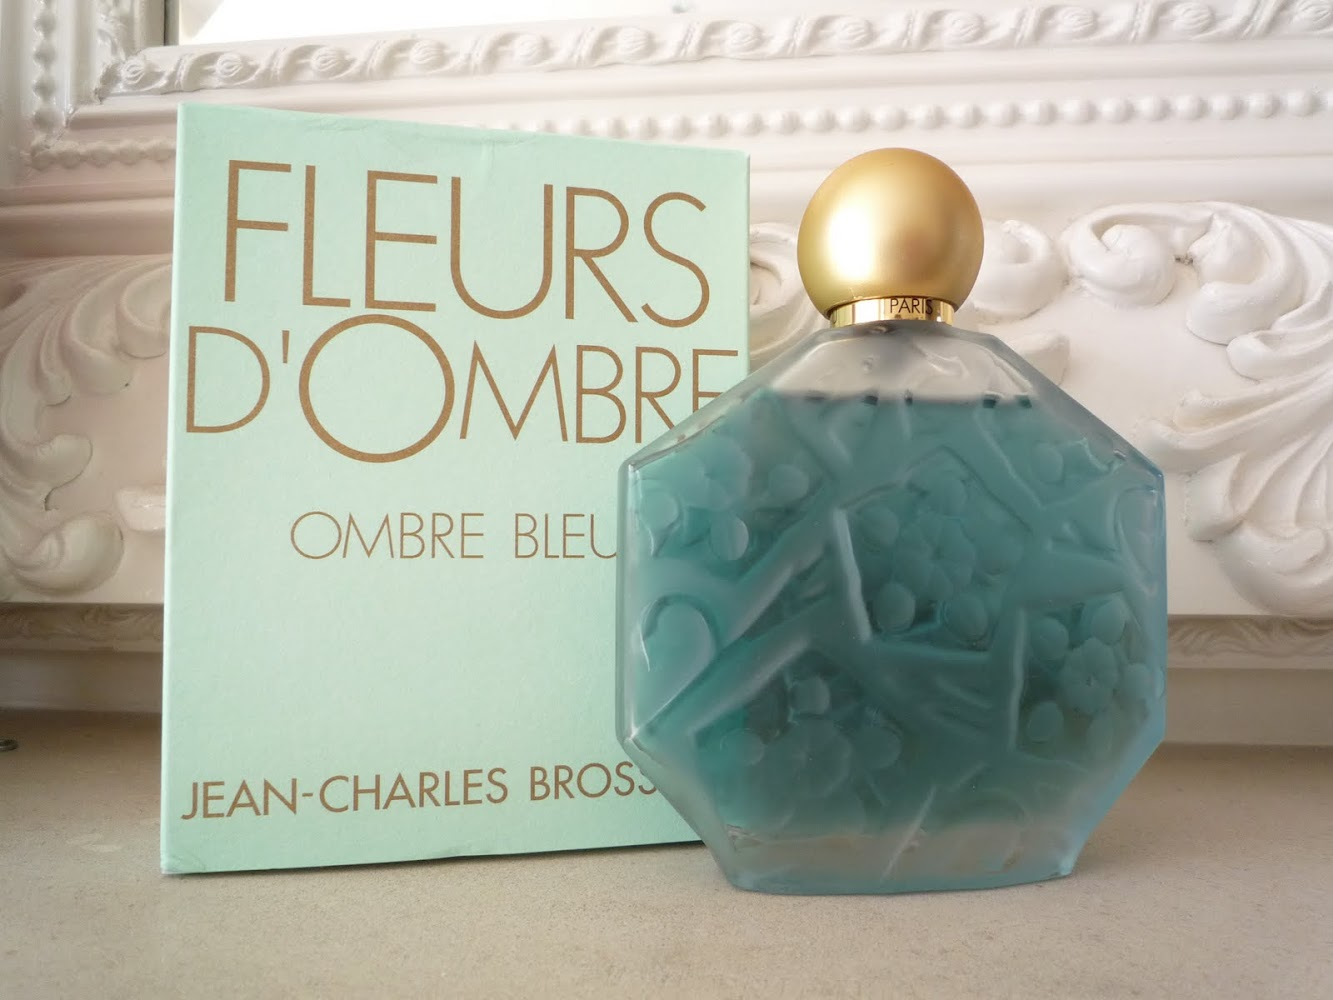 New Fragrance [Fleurs d'Ombre Ombre Bleue by Jean-Charles Brosseau]